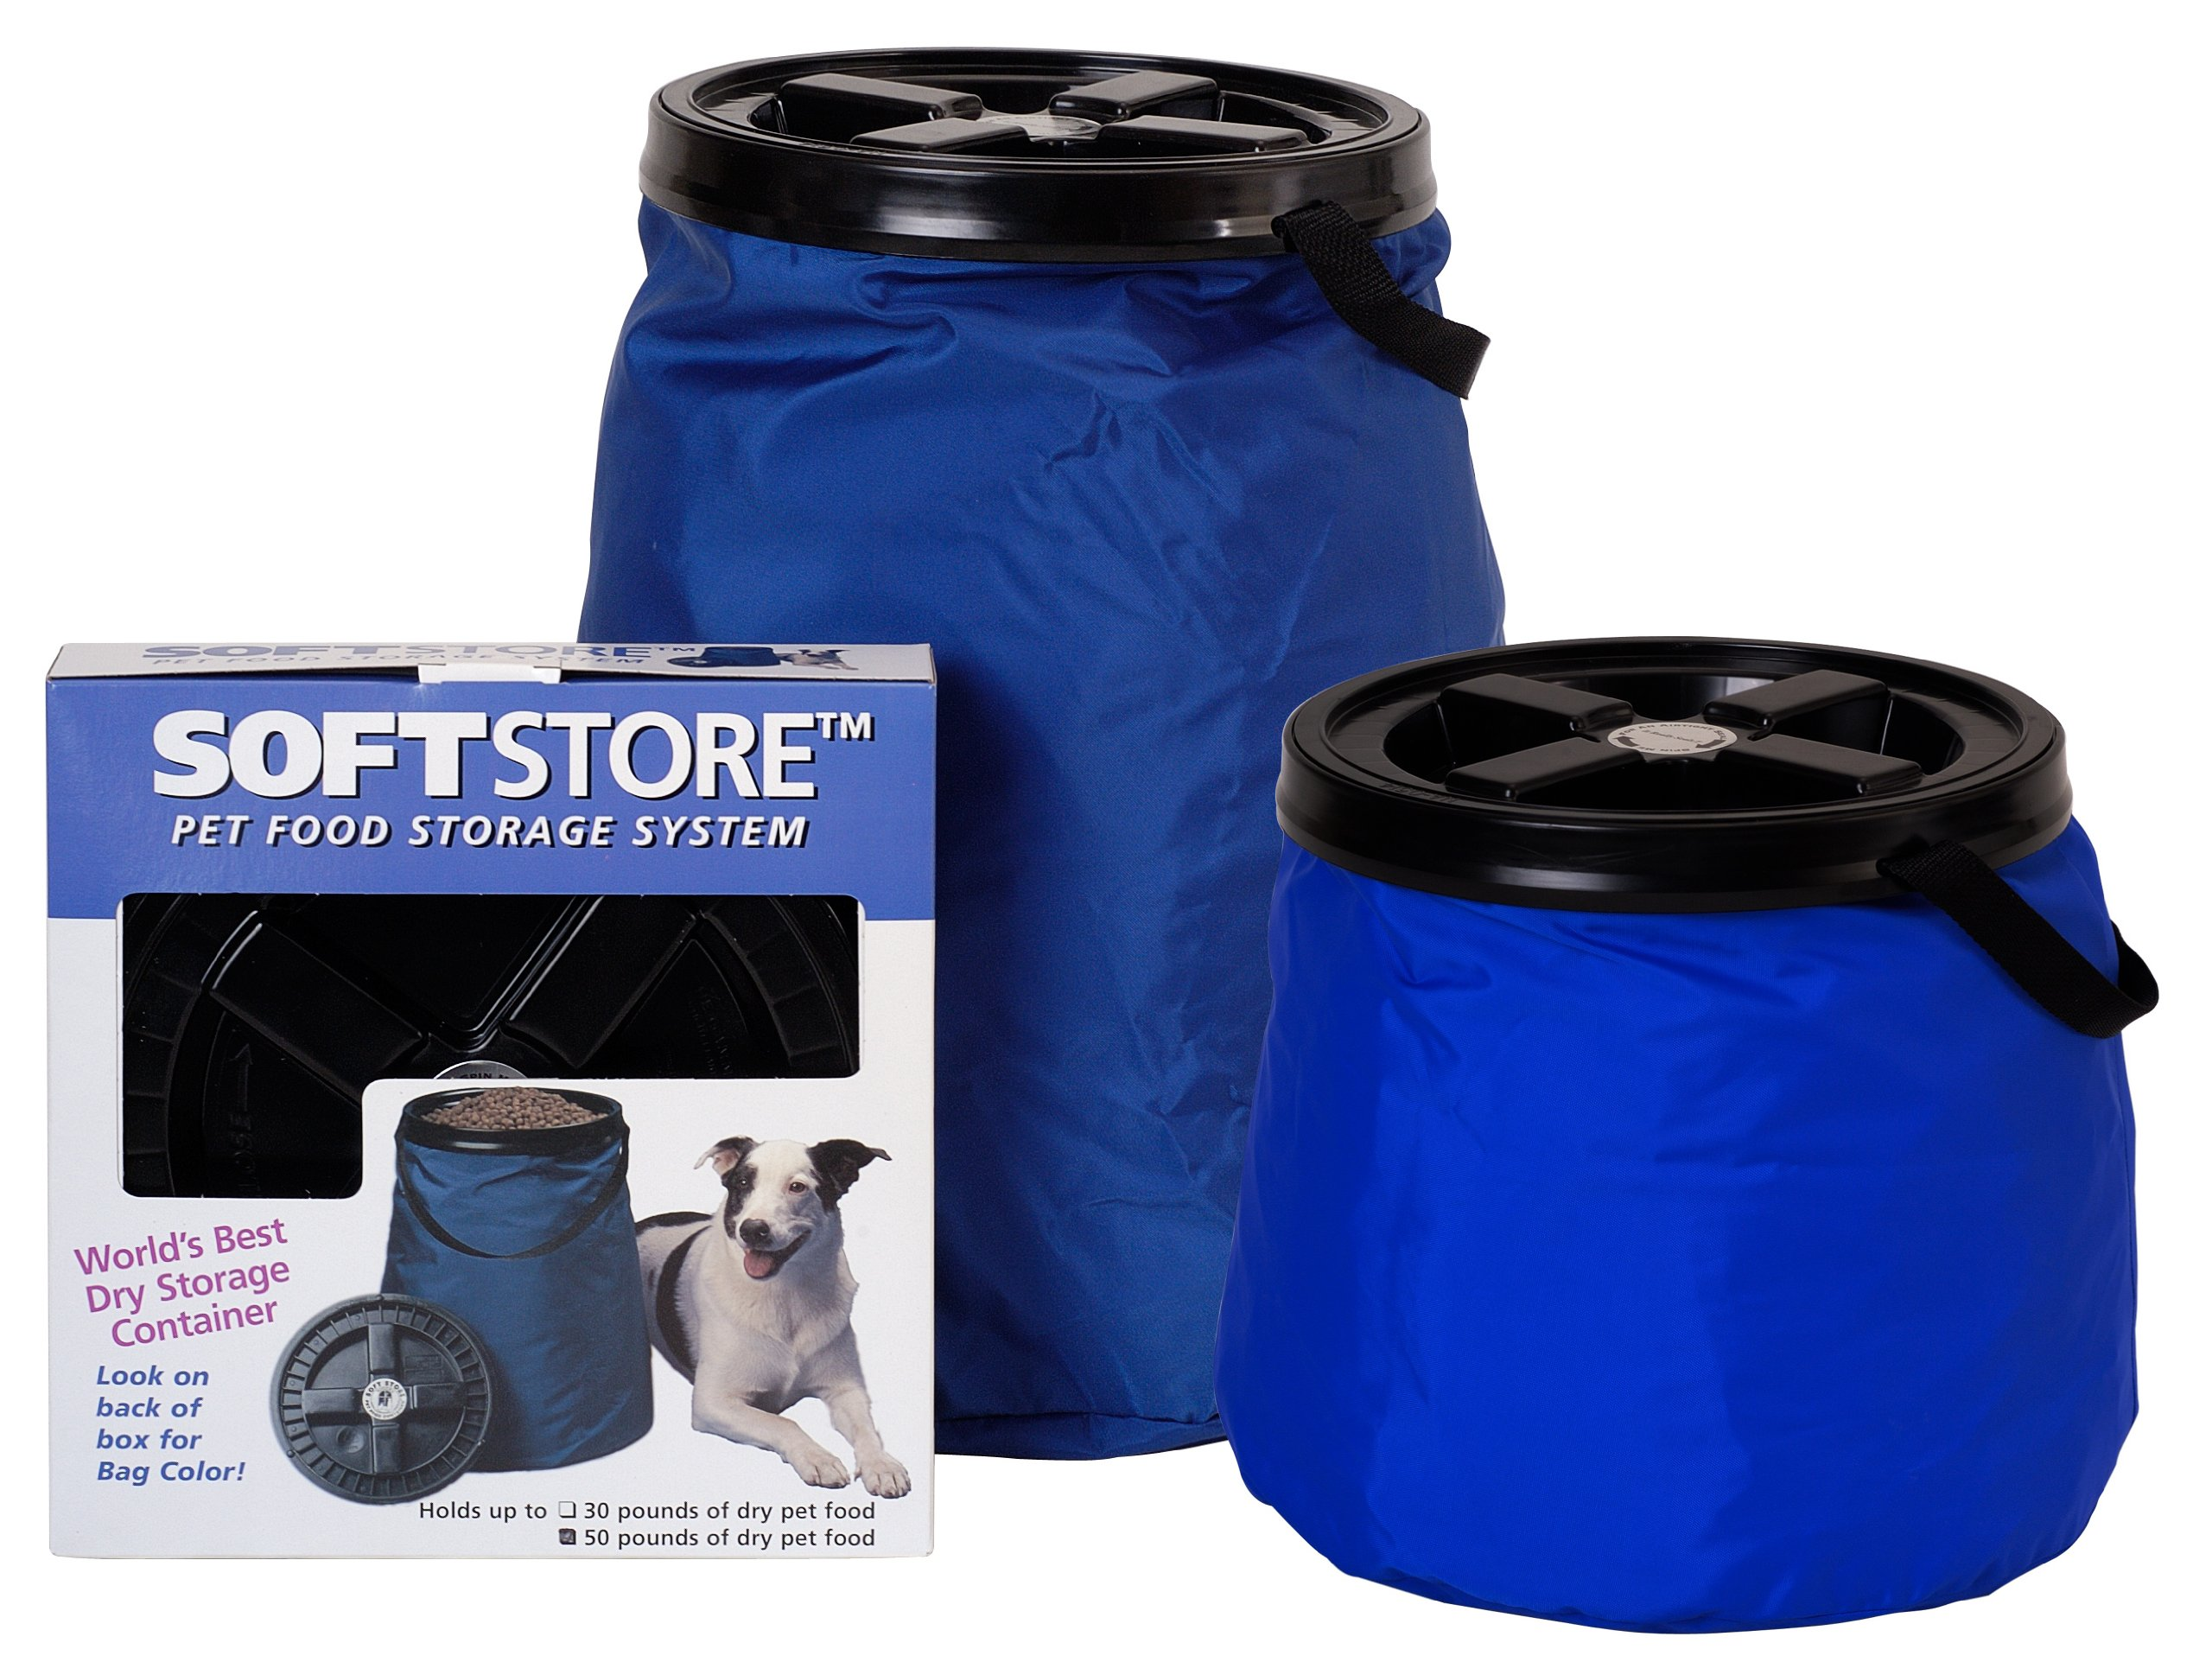 Vittles Vault SoftStore Collapsible, Airtight Pet Food Container 50 Pound Capacity, Blue by Vittles Vault (Image #2)